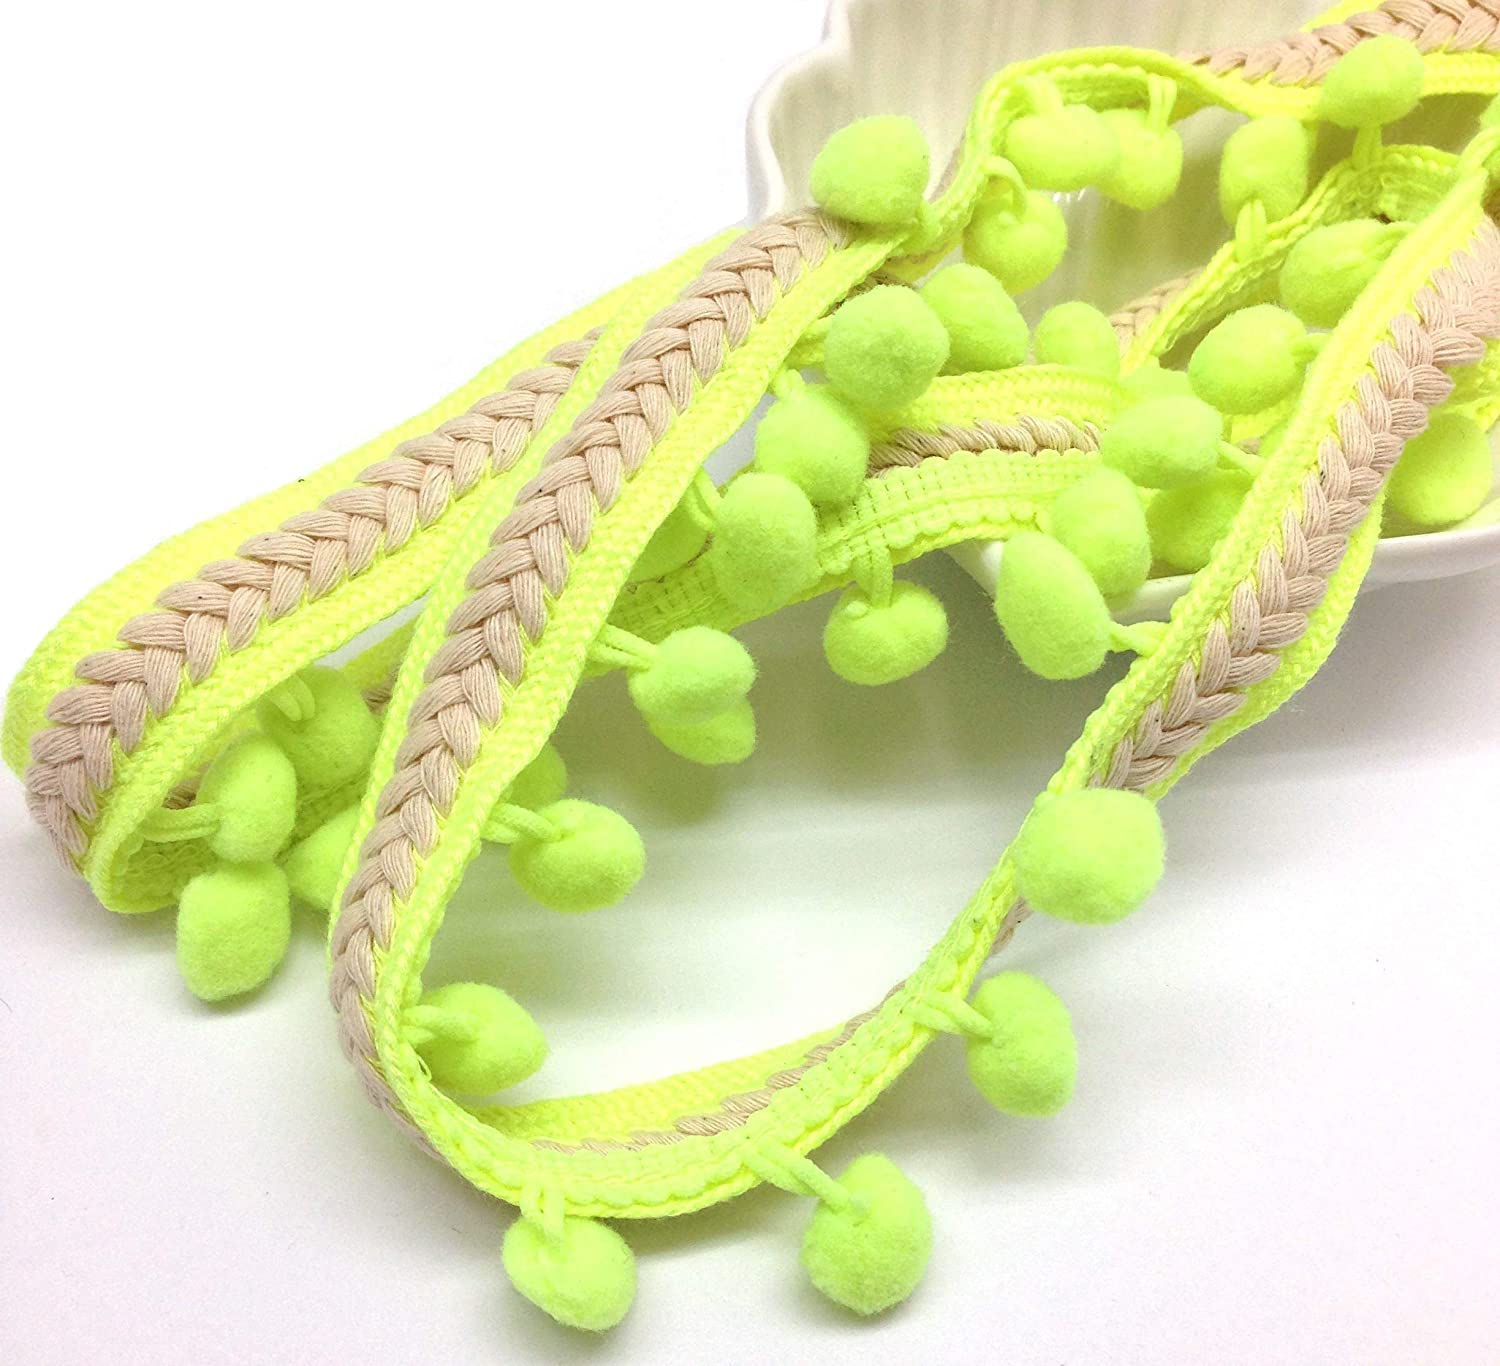 PEPPERLONELY 1 Meter (40 Inch) Yellow Pom Pom Trim Ball Sewing Accessories Lace Trim Cotton Ribbon, 35mm x 12mm